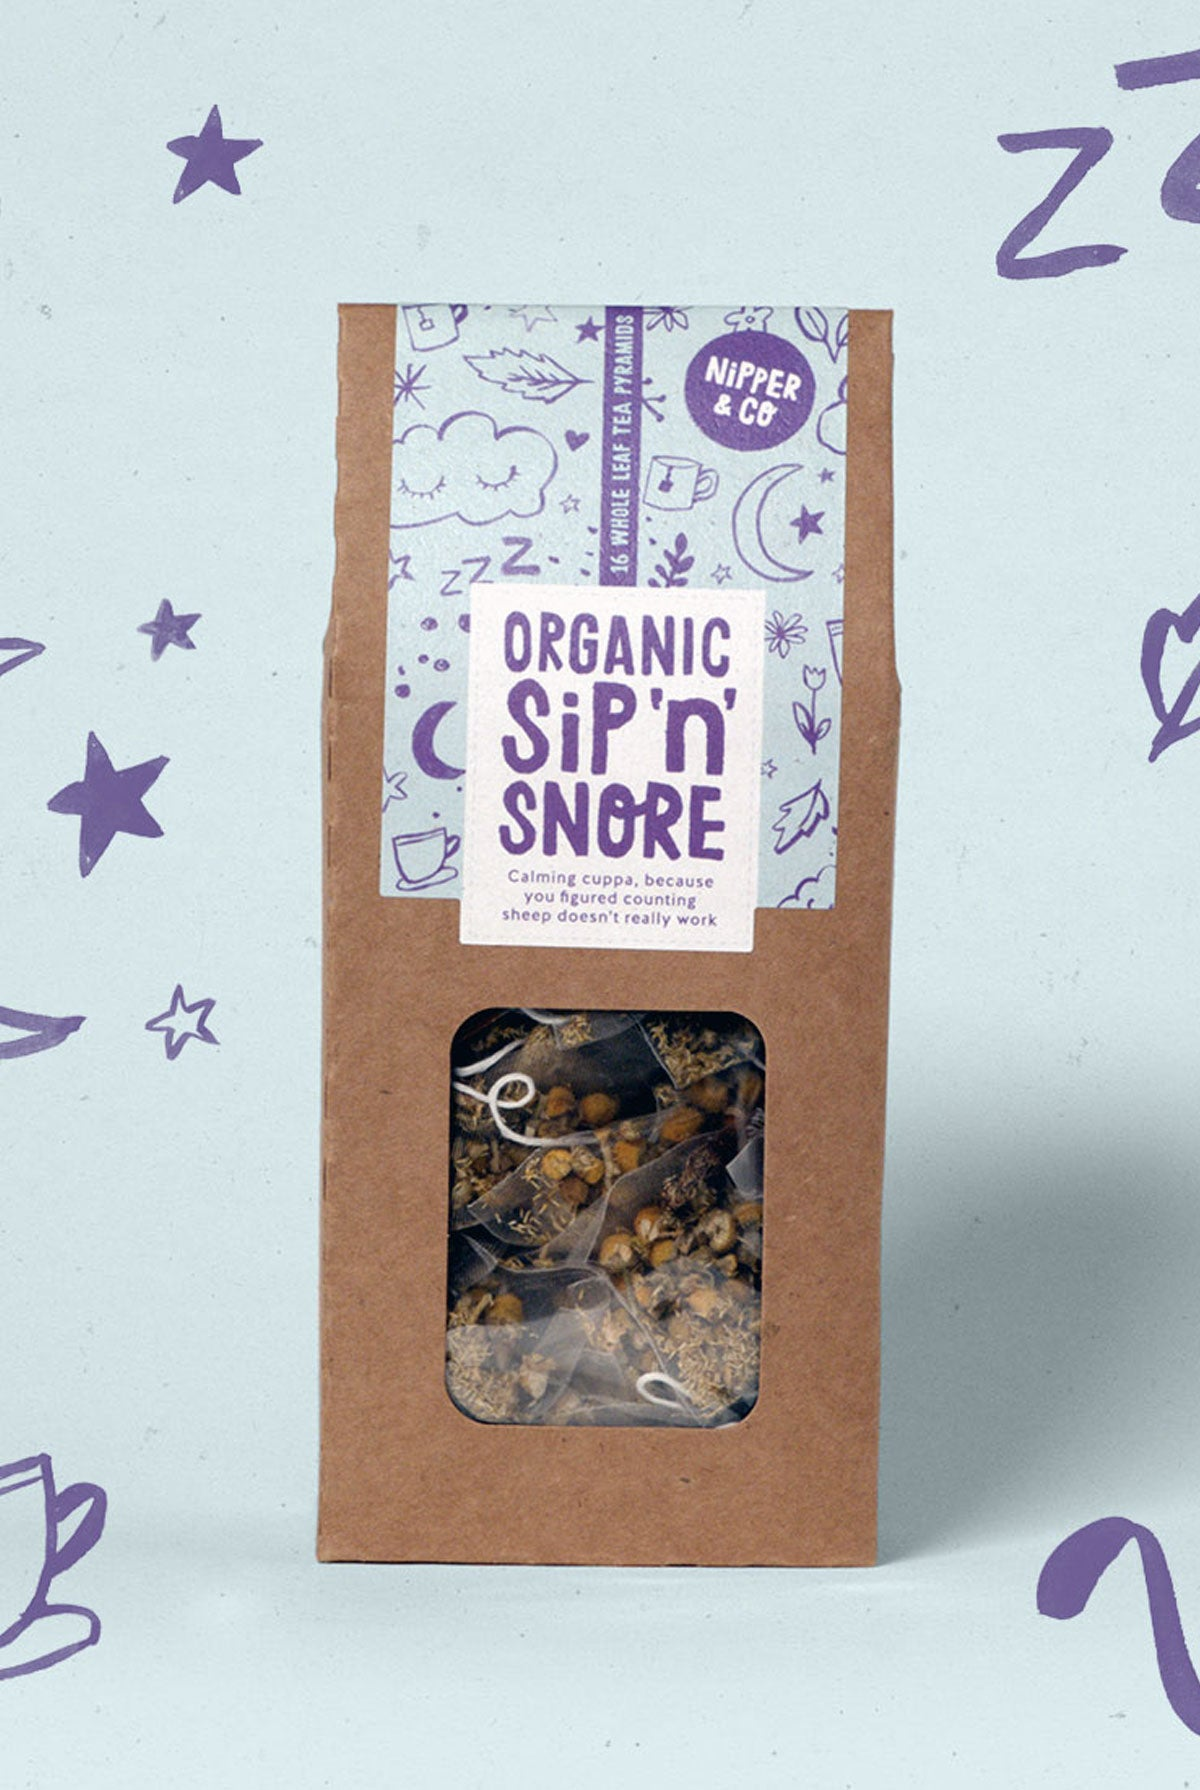 Nipper & Co Organic Sip 'n' snore - For Easy Sleep & Relaxation Tea - One Size